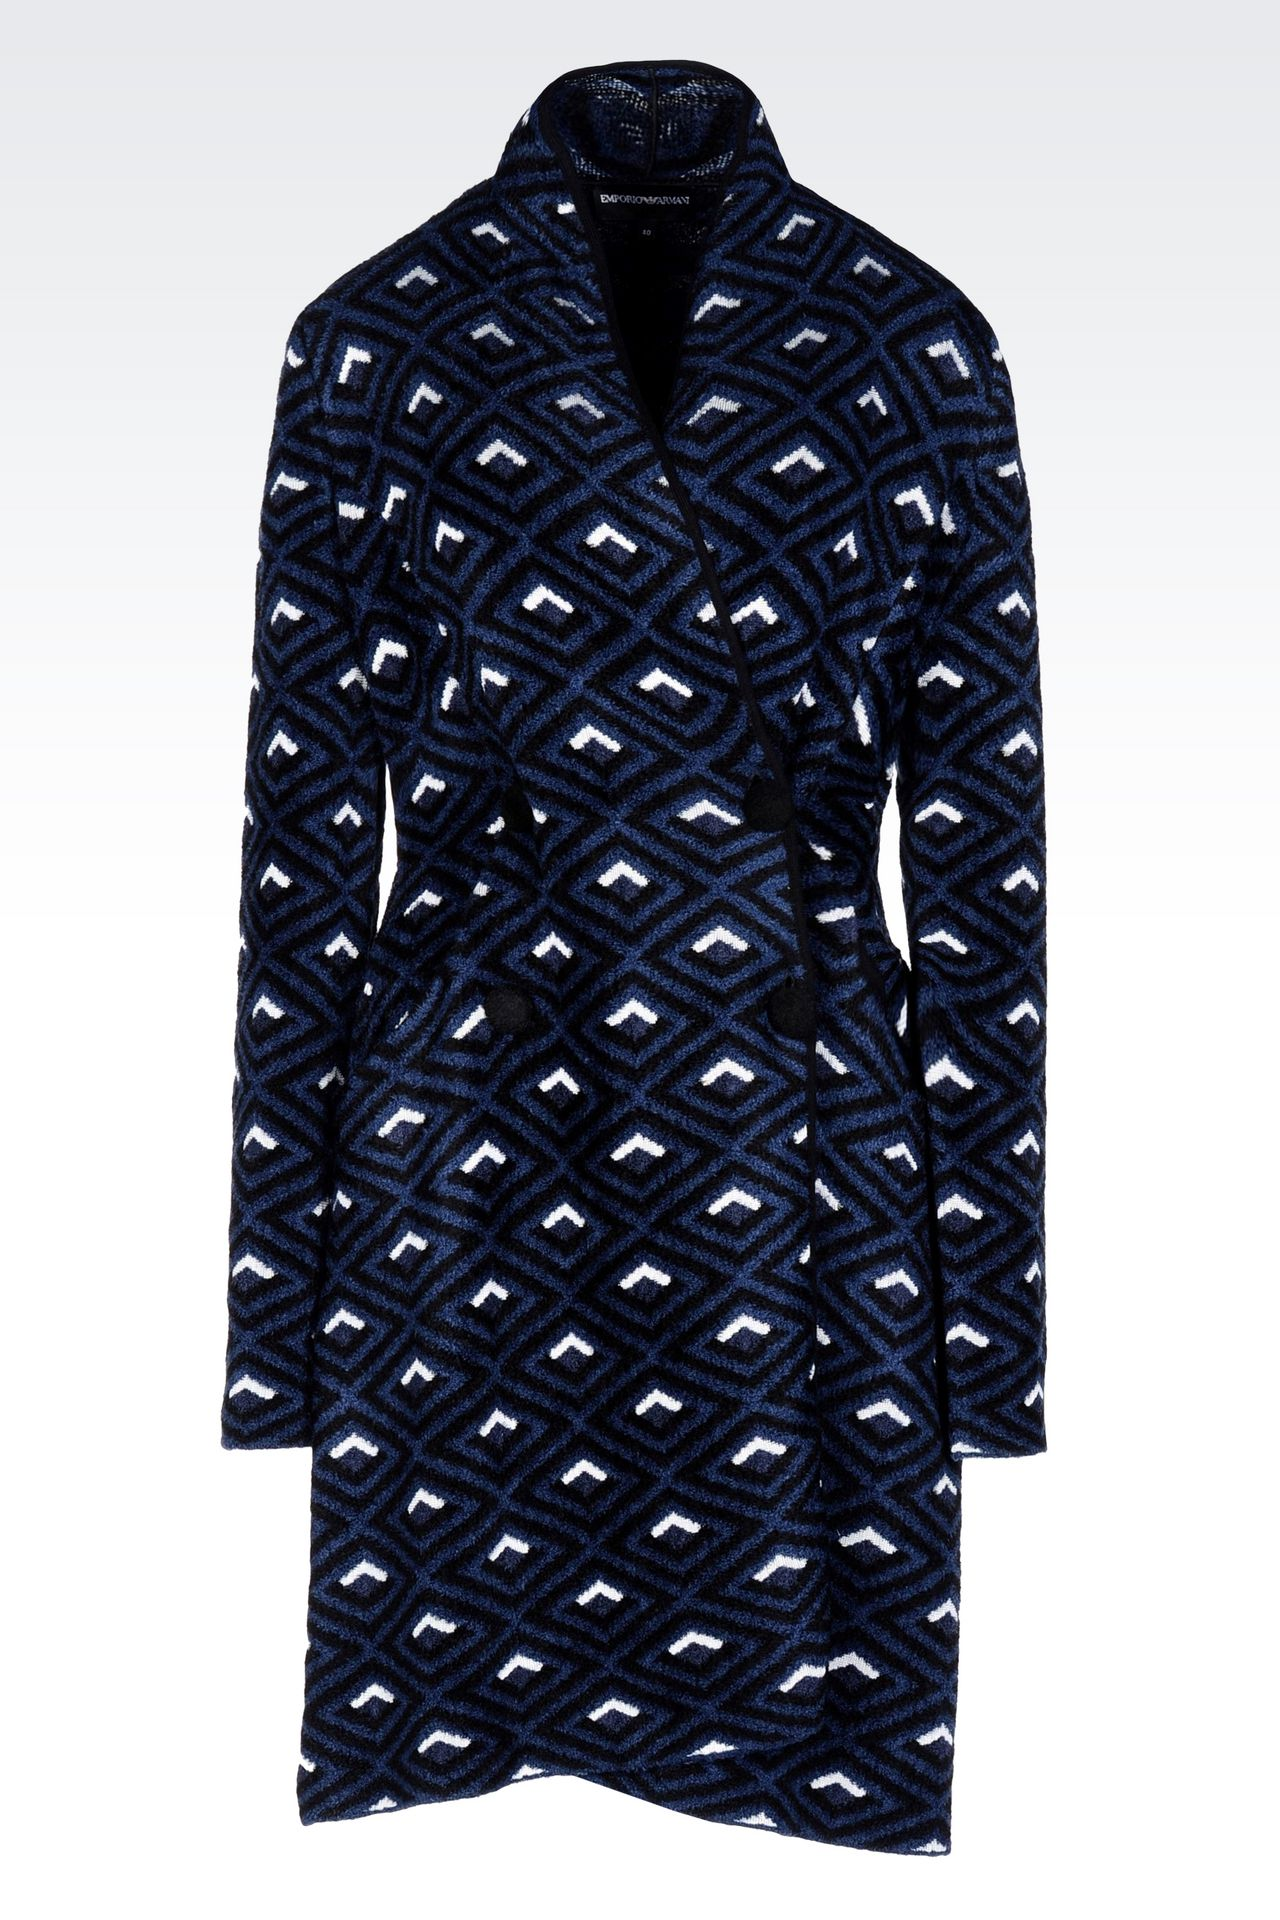 DOUBLE-BREASTED COAT IN JACQUARD CHENILLE: Single-breasted coats Women by Armani - 0